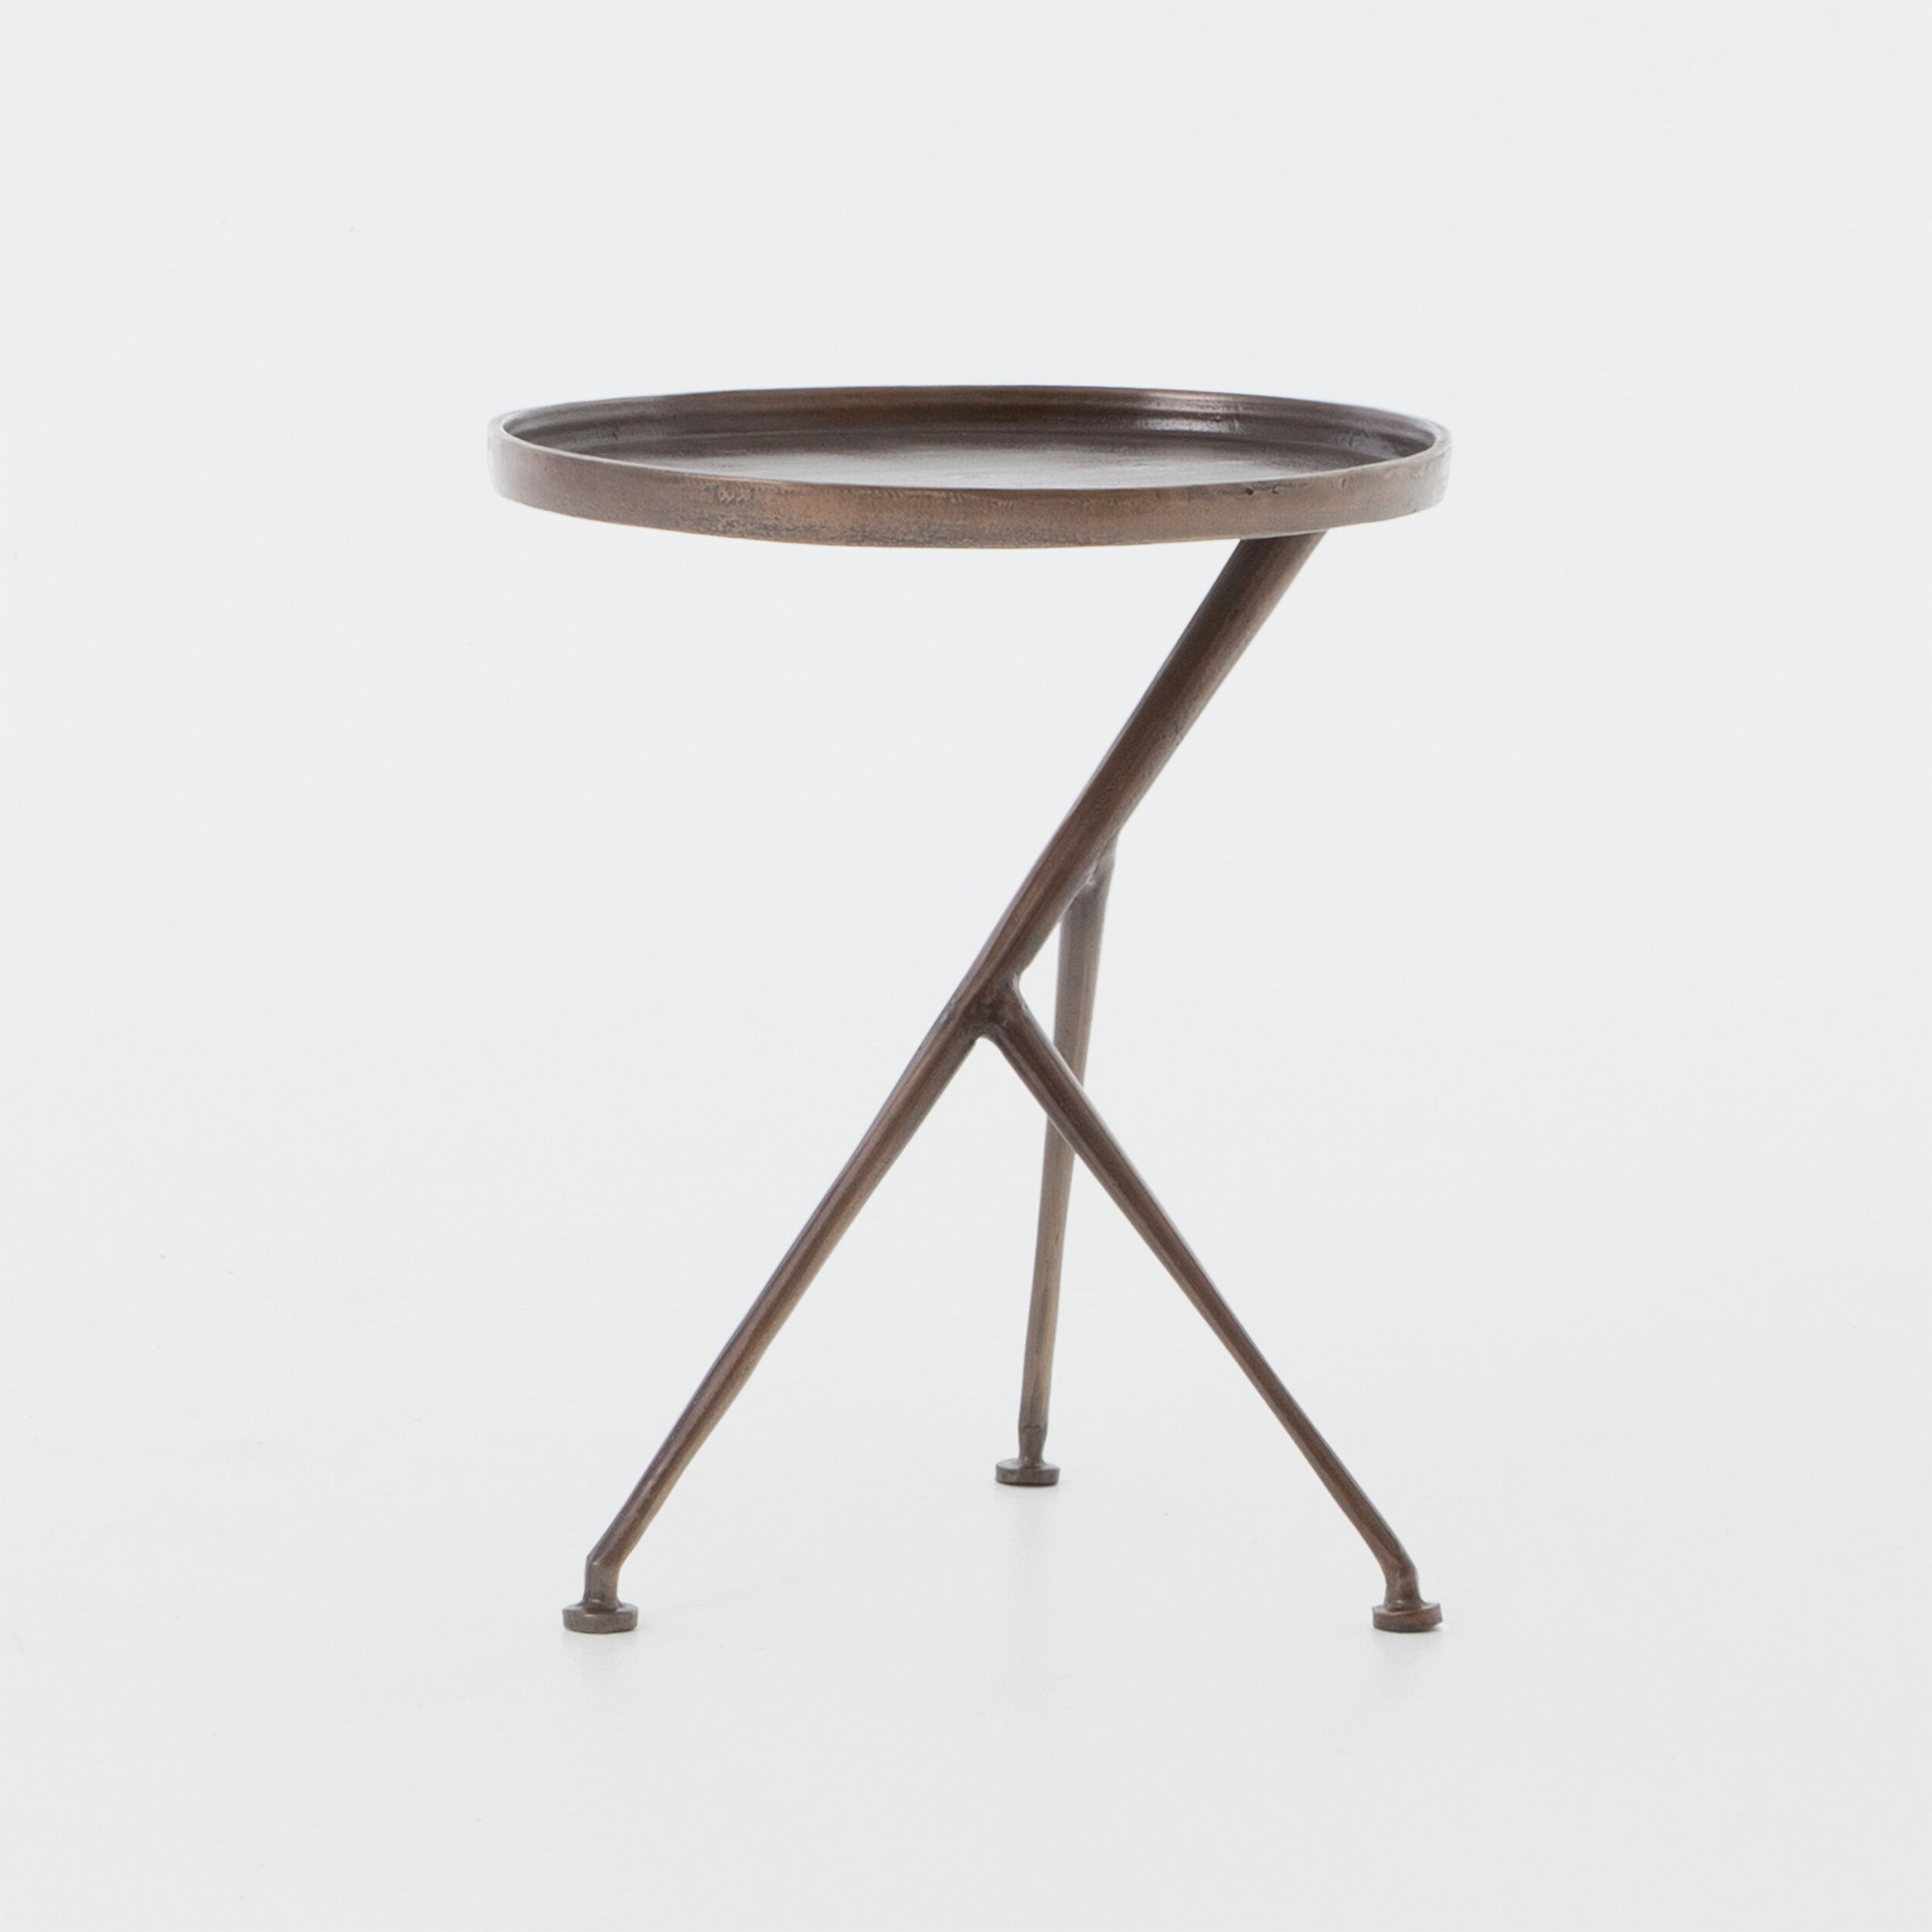 shop-mayker-home-gifting-design-nashville-schmidt-accent-table.jpg